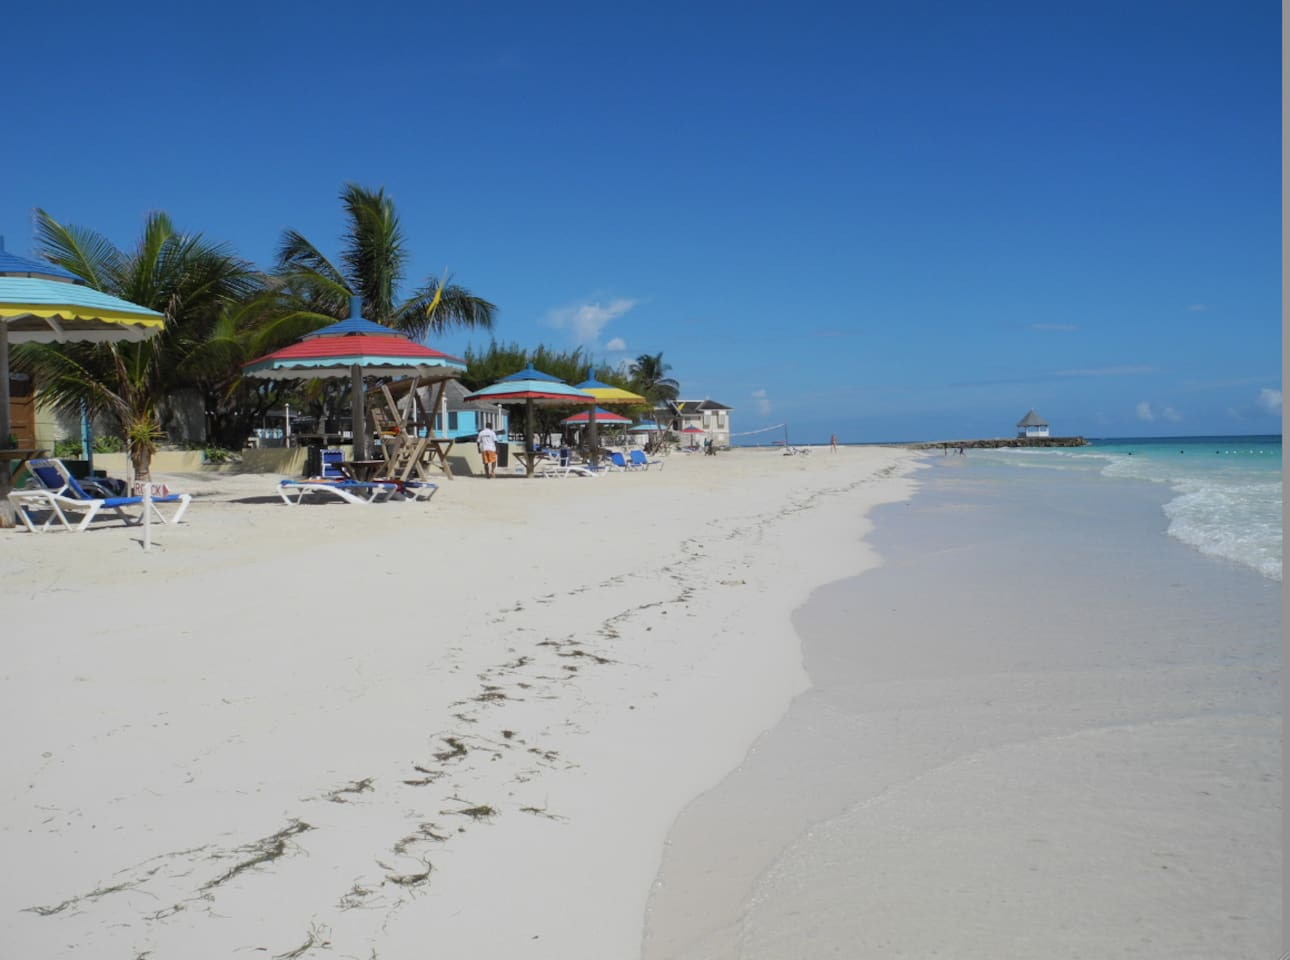 Jamaicas best private beach, at Siver Sands, Duncans, Trelawny-JWI